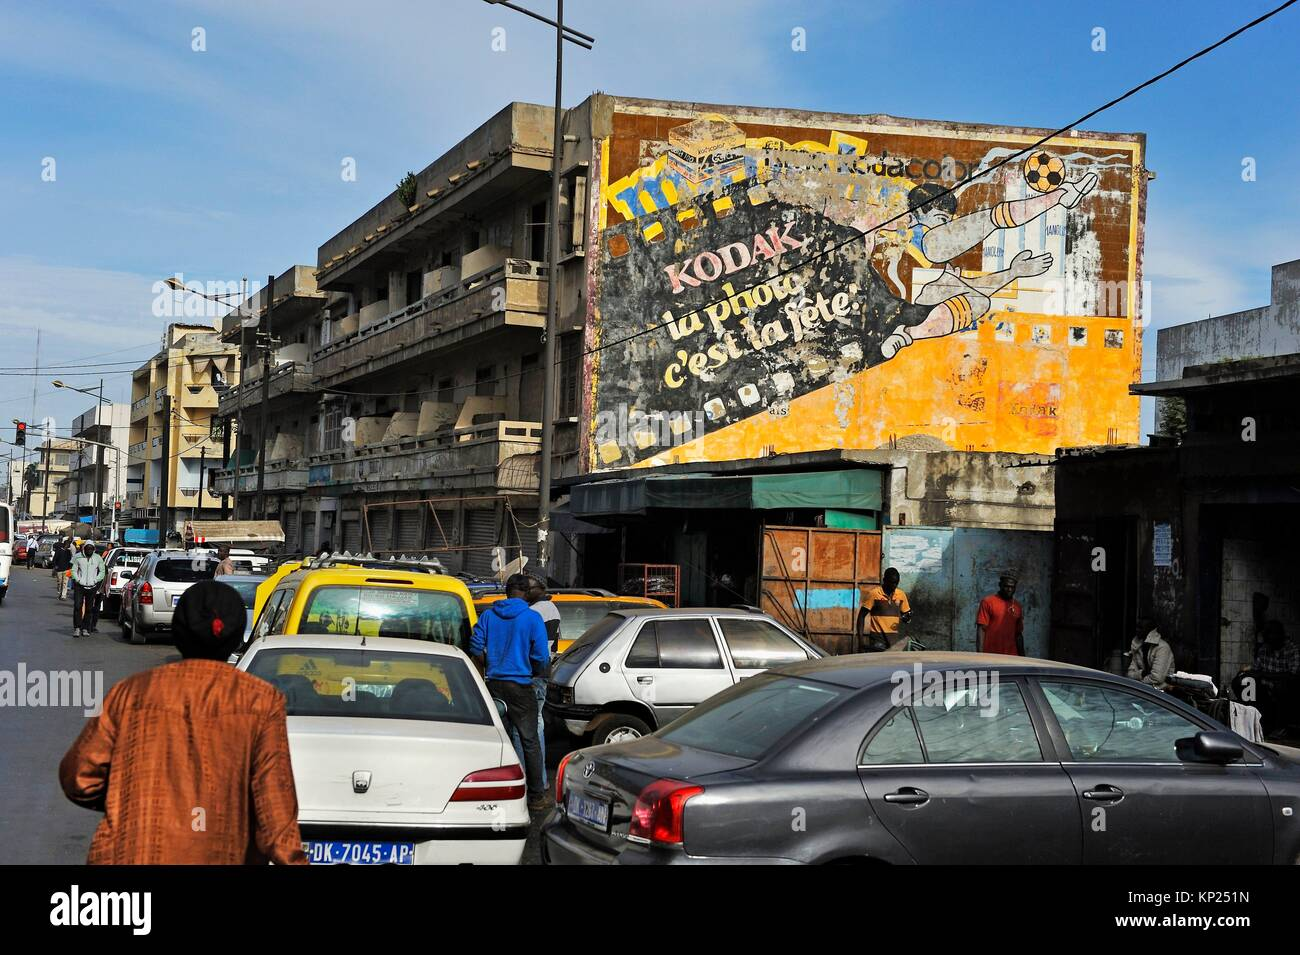 Dakar, Senegal, en Africa Occidental. Imagen De Stock